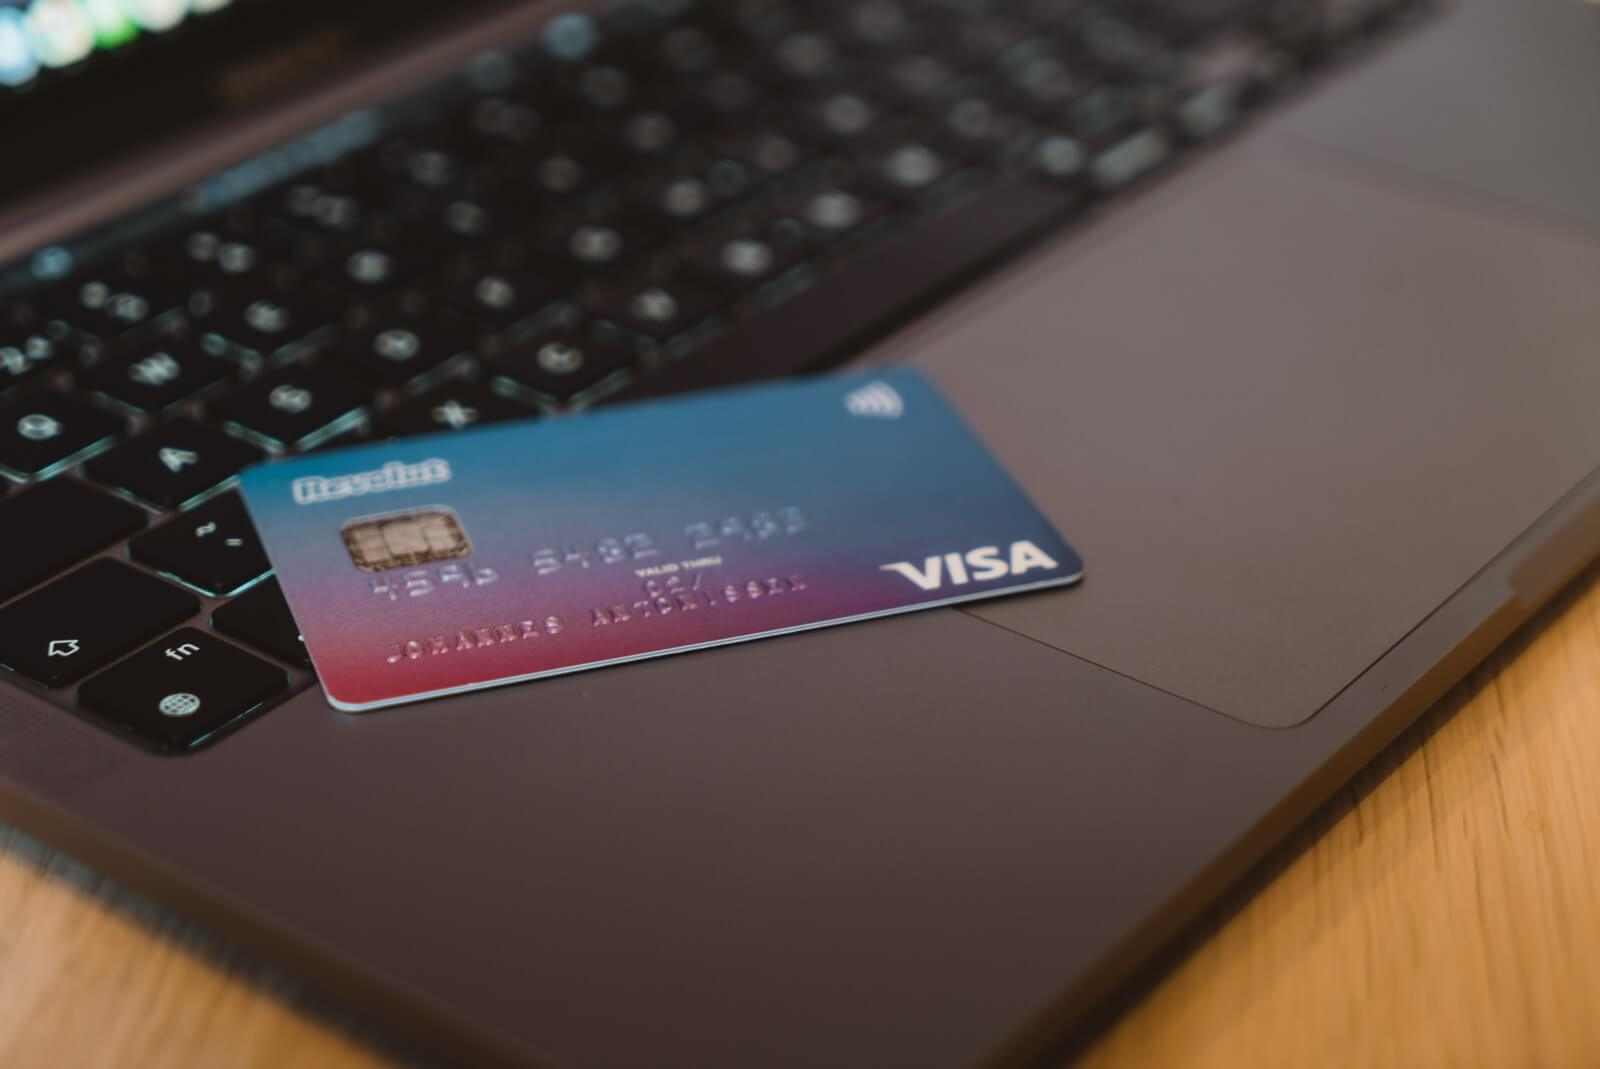 blue and white visa card on silver laptop computer